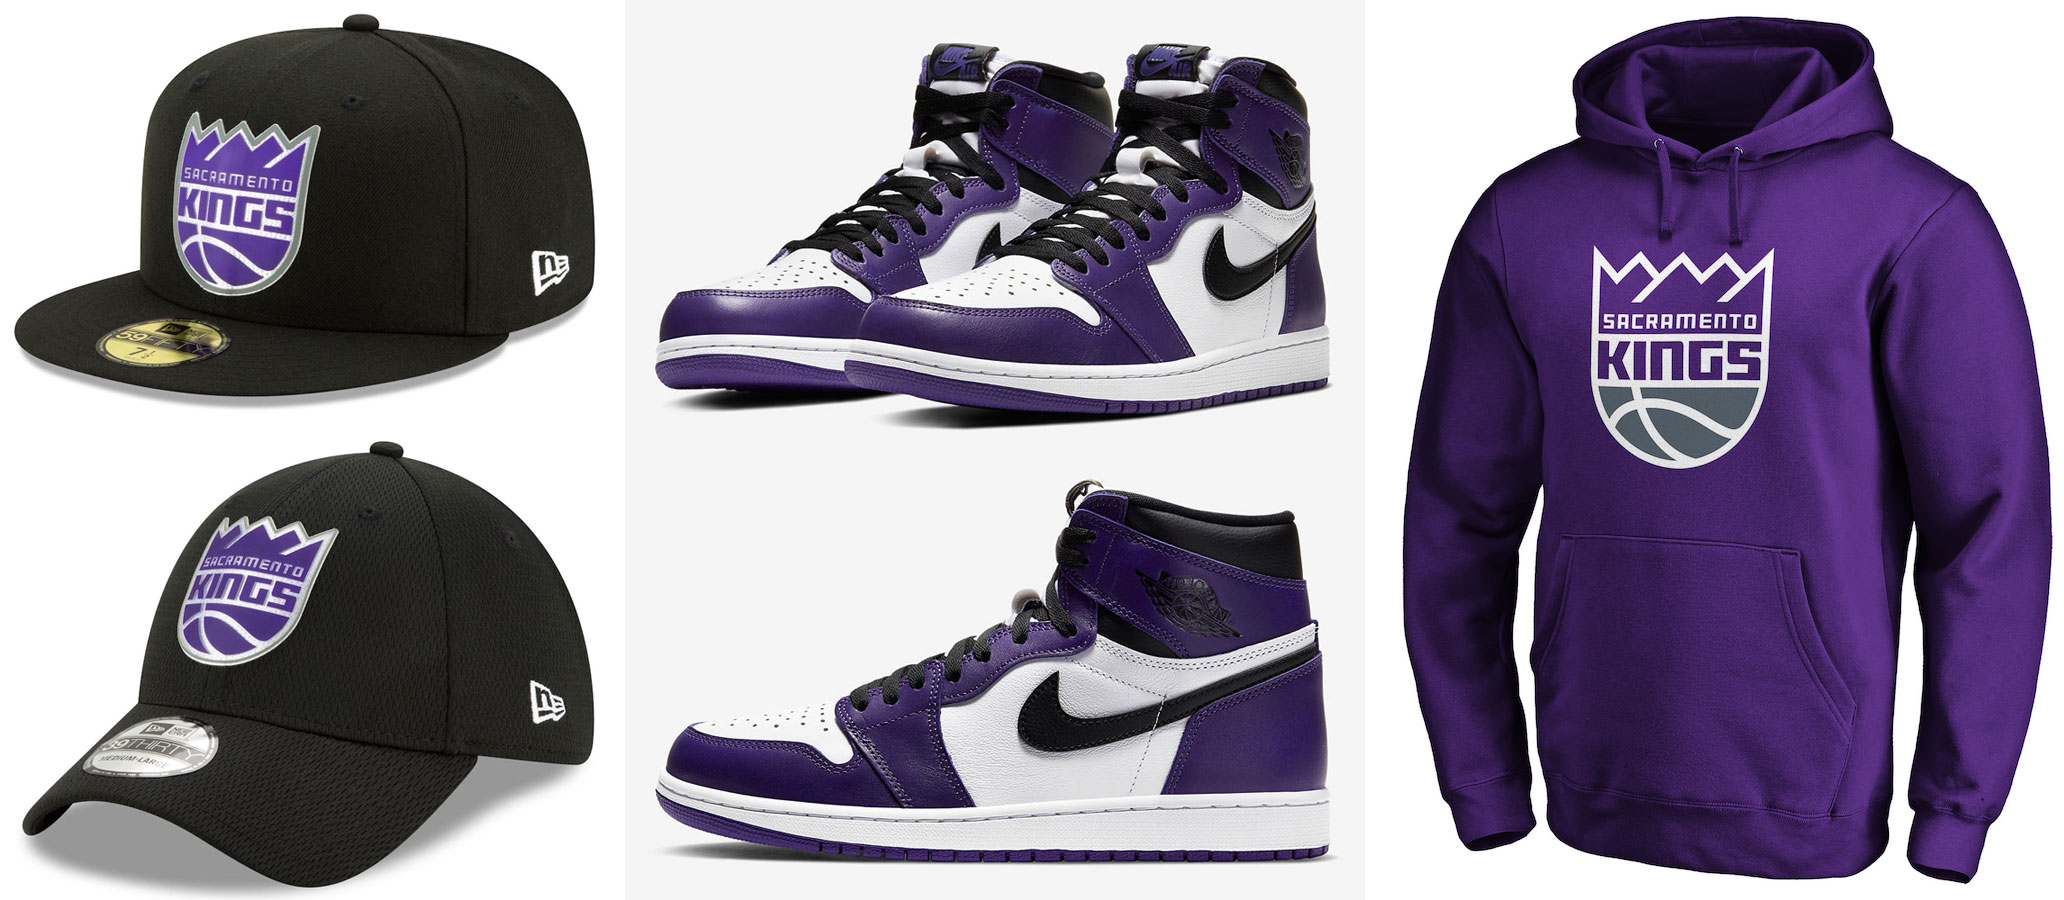 air-jordan-1-high-court-purple-kings-hats-apparel